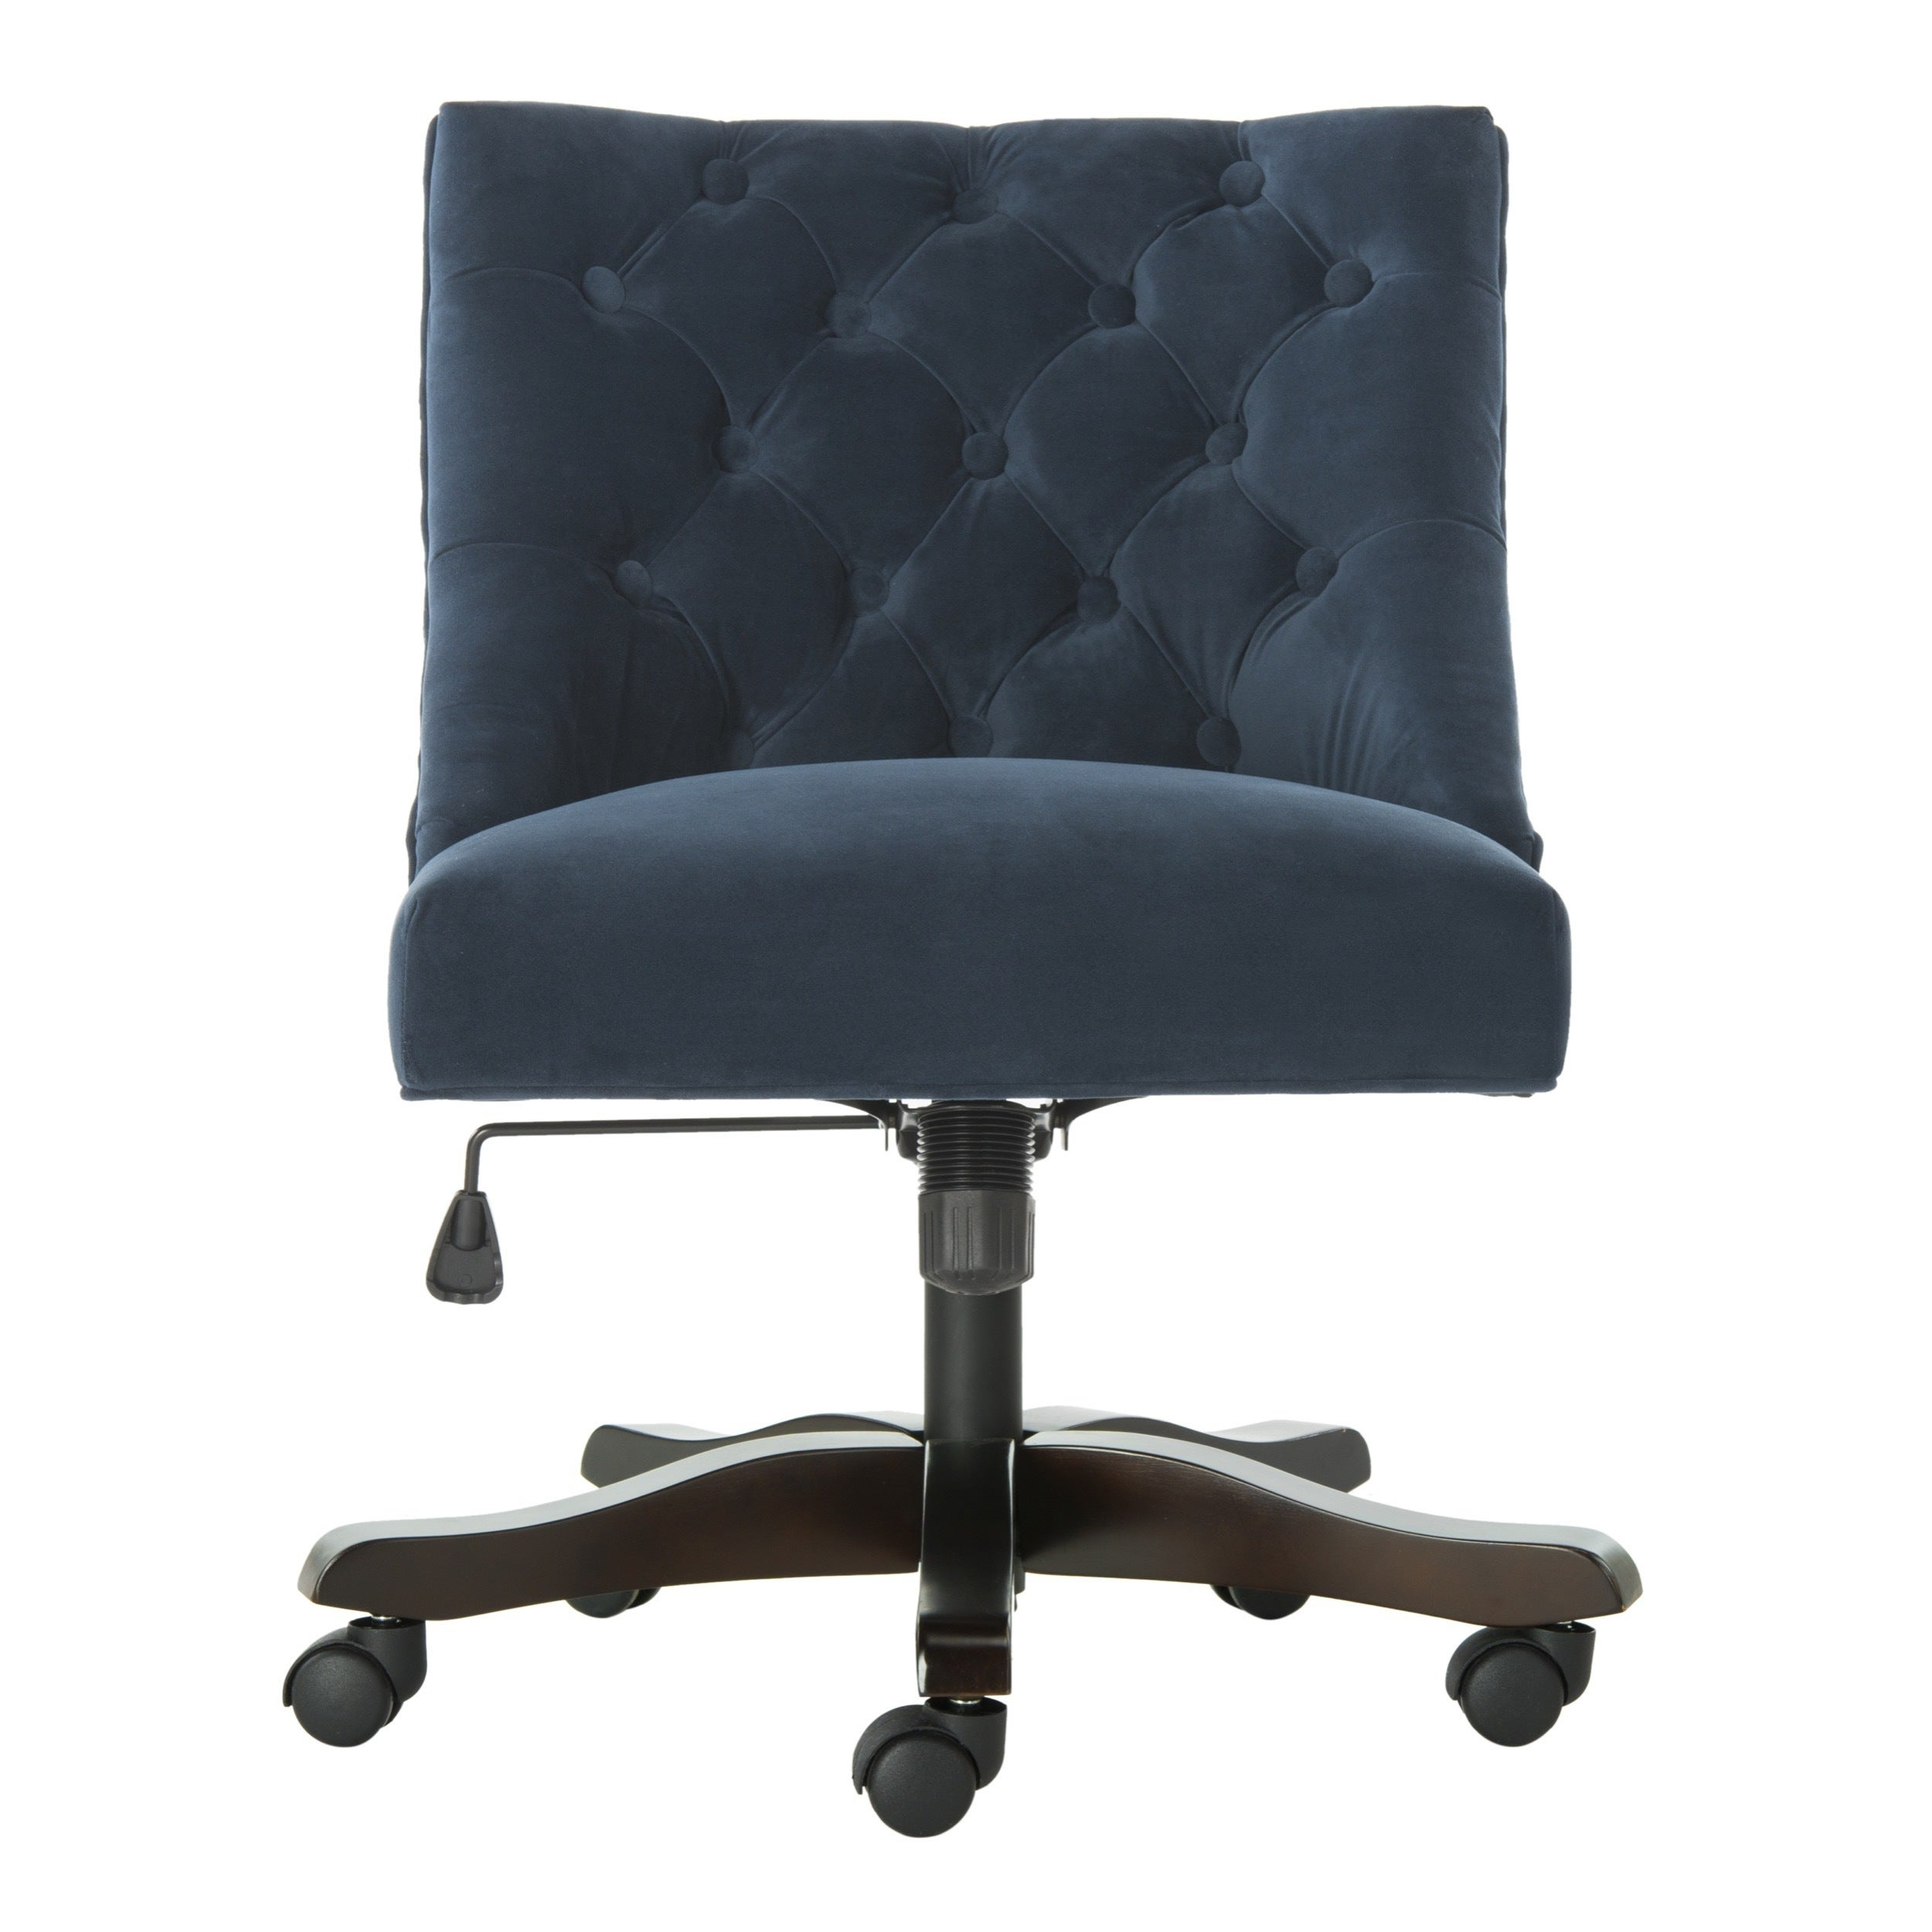 home velvet leg safavieh shipping today office product desk chair swivel garden chrome free overstock amy tufted